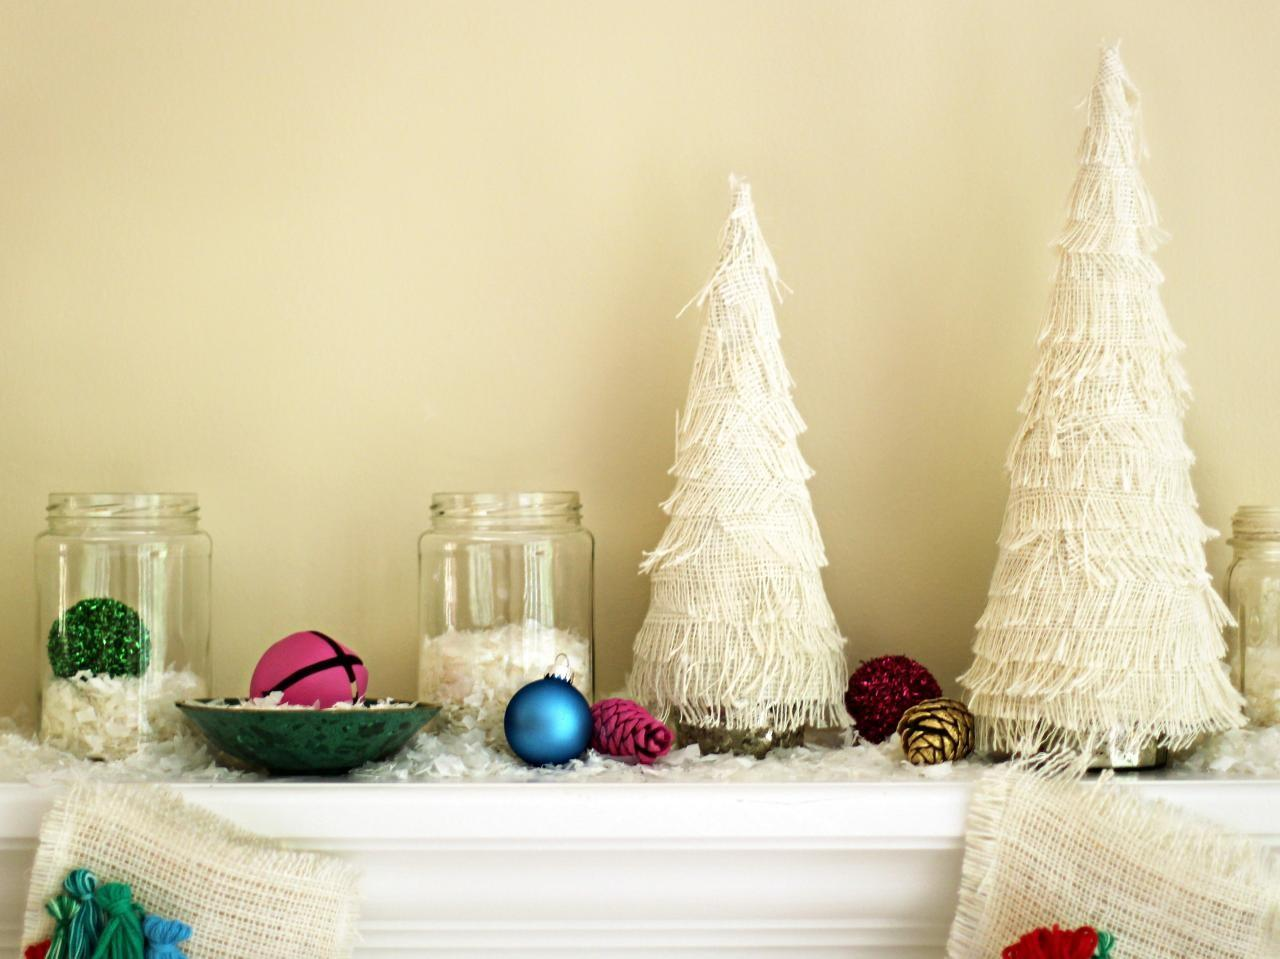 Make Fringed Christmas Tree Centerpiece Tos